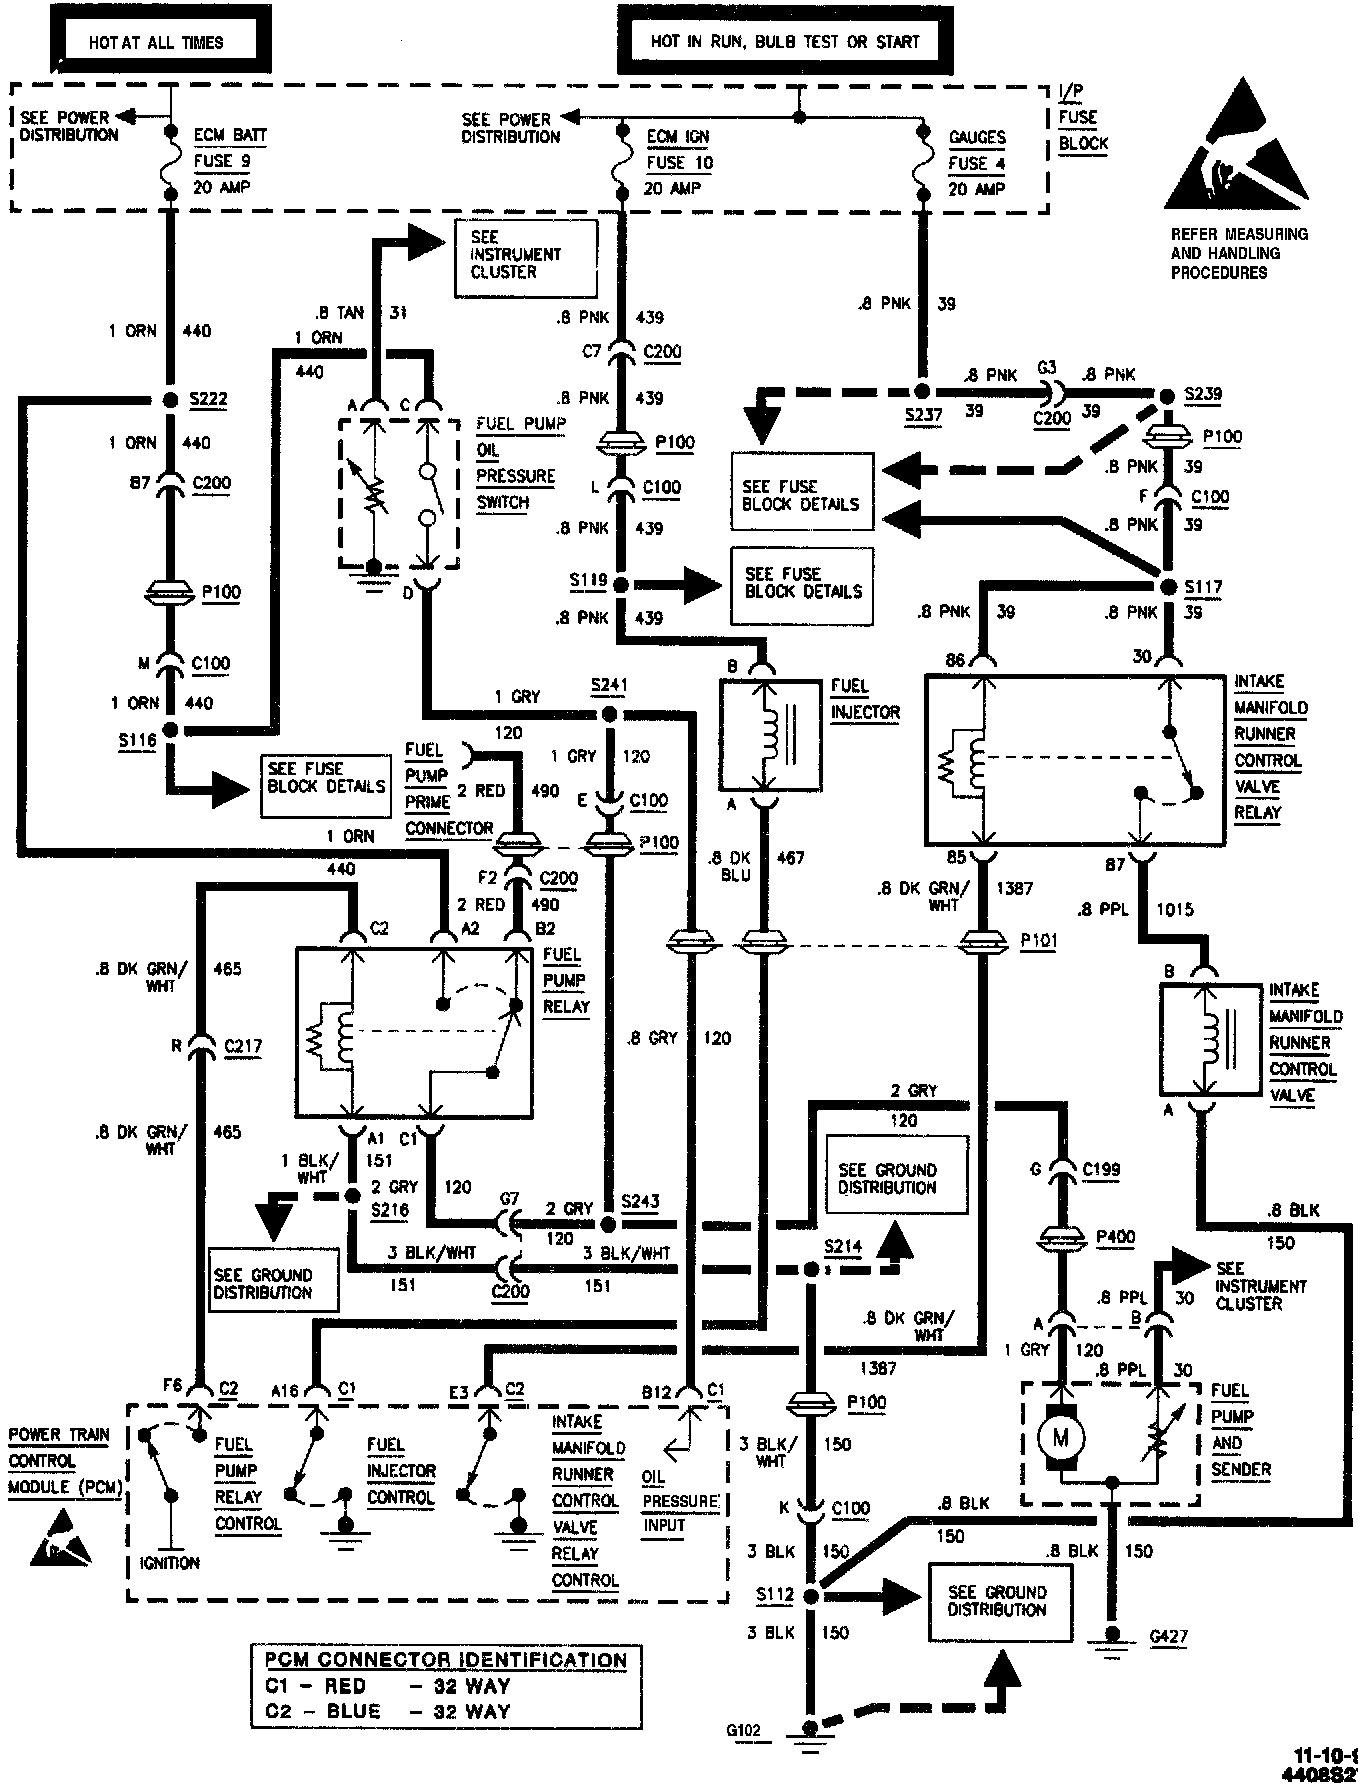 1995 chevy 1500 wiring diagram hecho wiring diagram 93 Chevy Truck Wiring Diagram 1995 chevy 1500 wiring diagram hecho wiring diagram95 s10 fuse diagram wiring diagrams10 wiring harness diagram